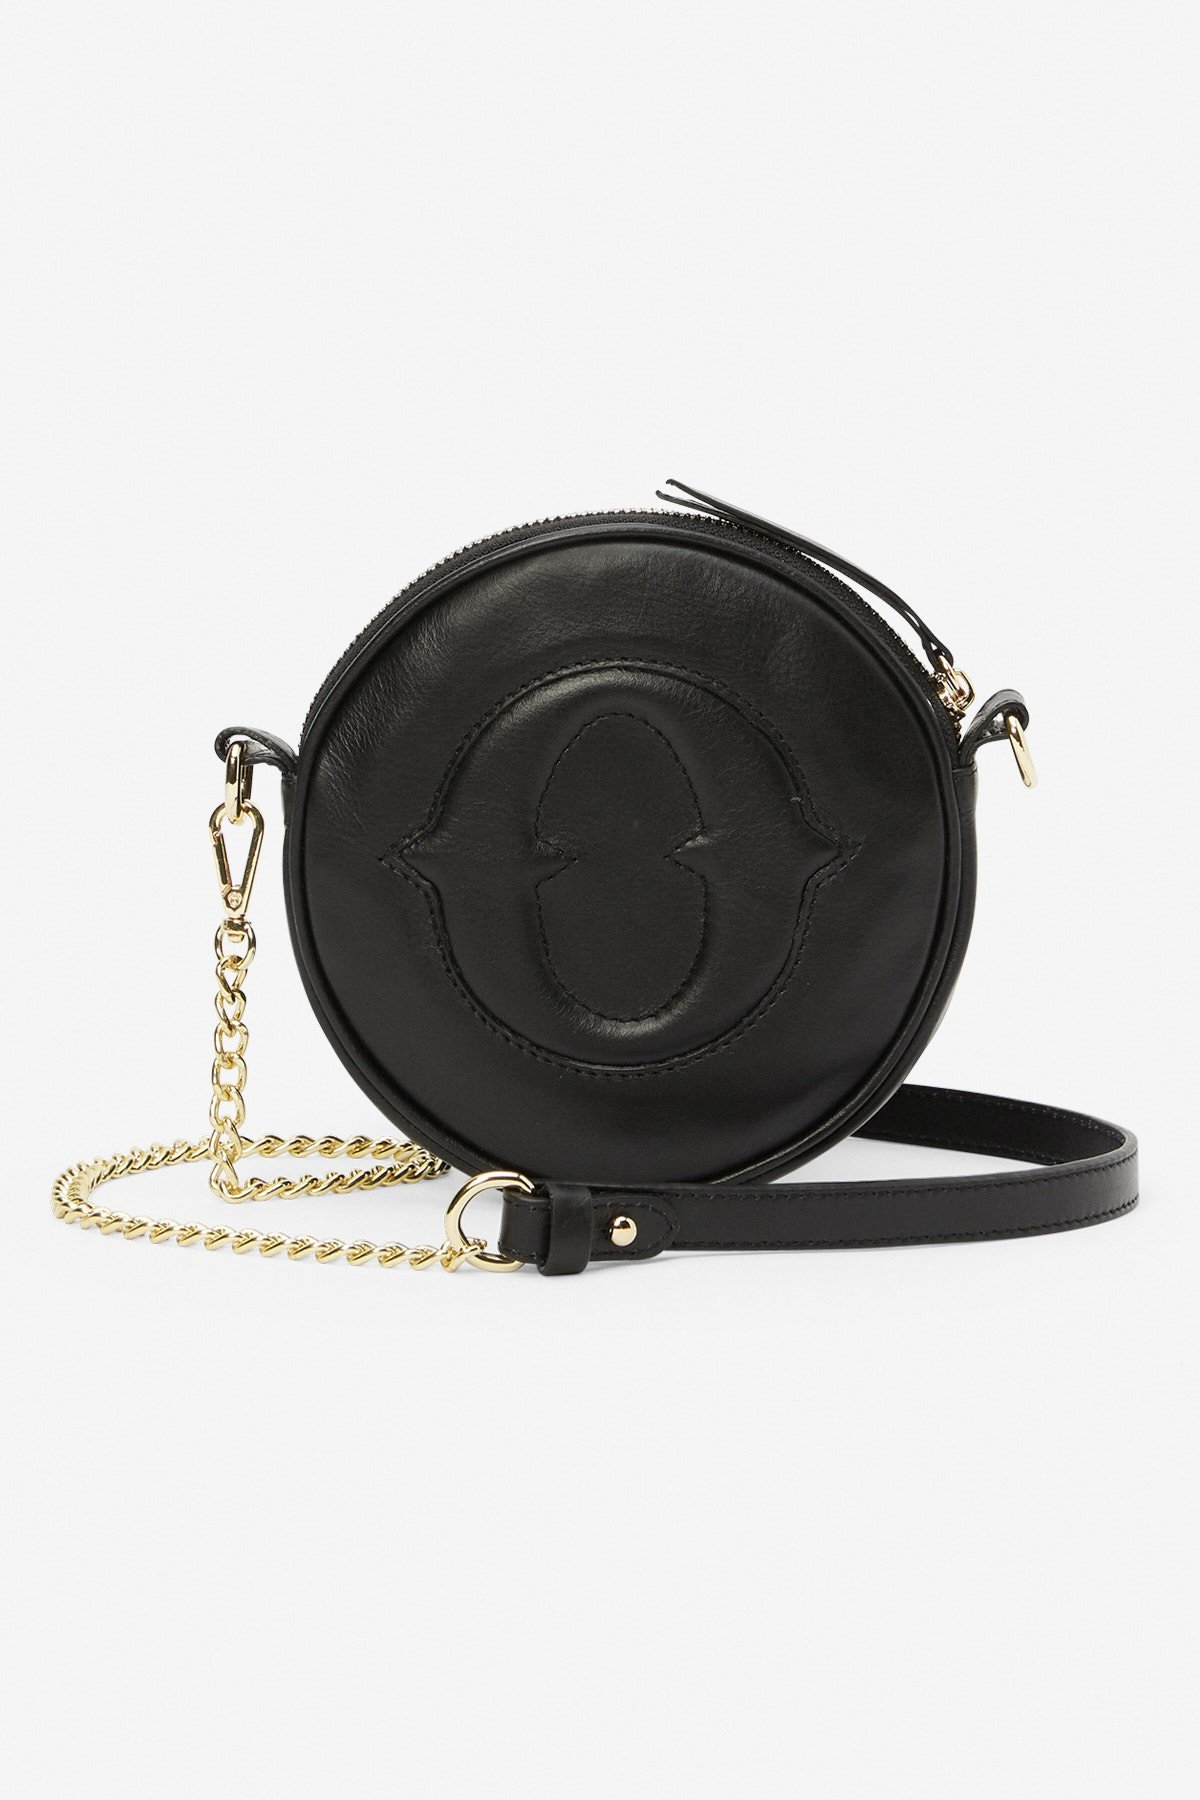 Small and round leather handbag with strap